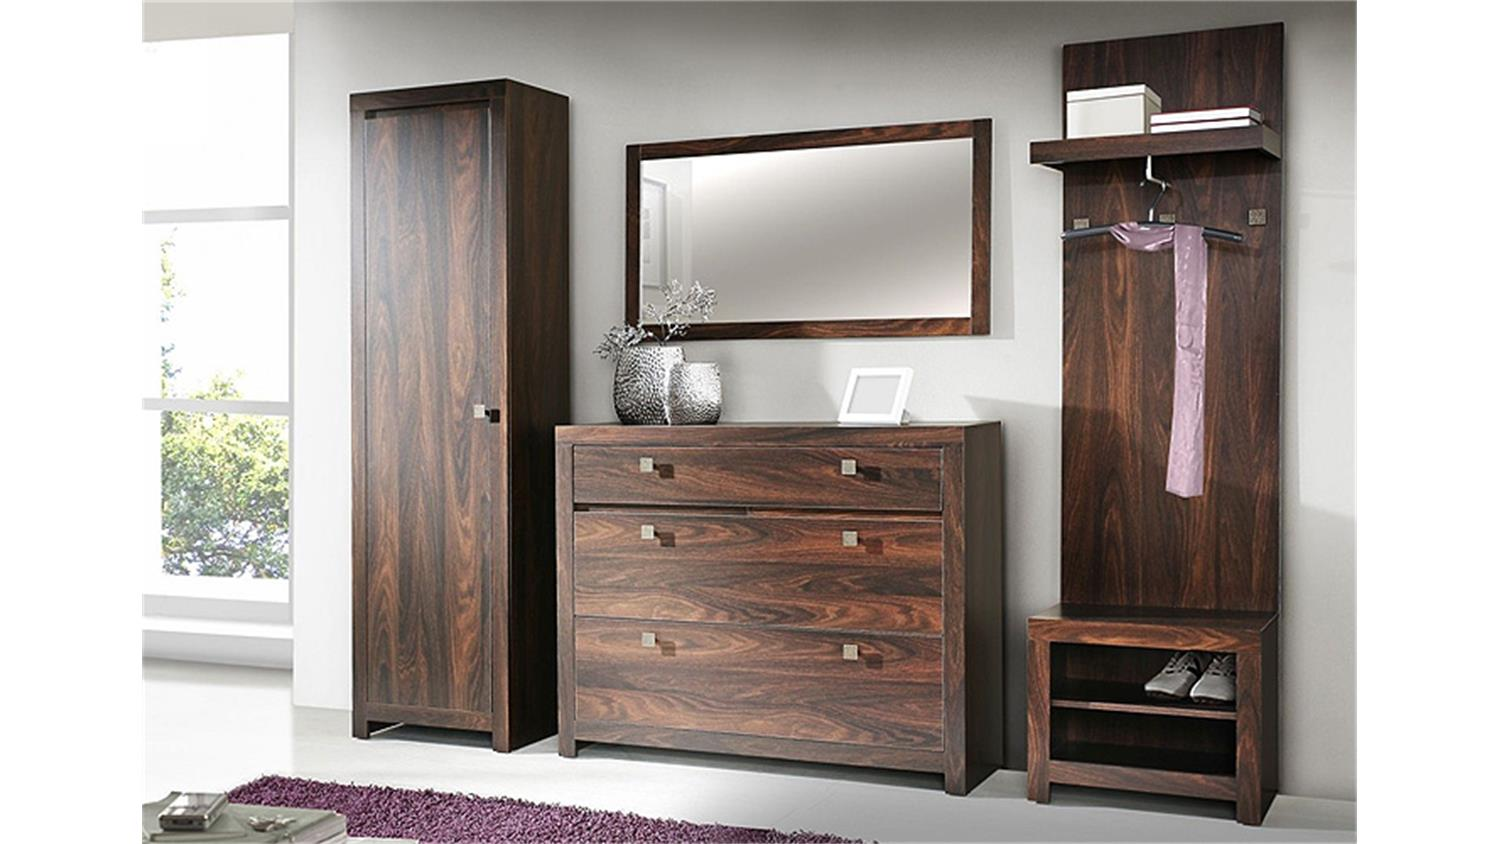 garderobenset indigo schuhschrank eiche durance kolonialstil. Black Bedroom Furniture Sets. Home Design Ideas